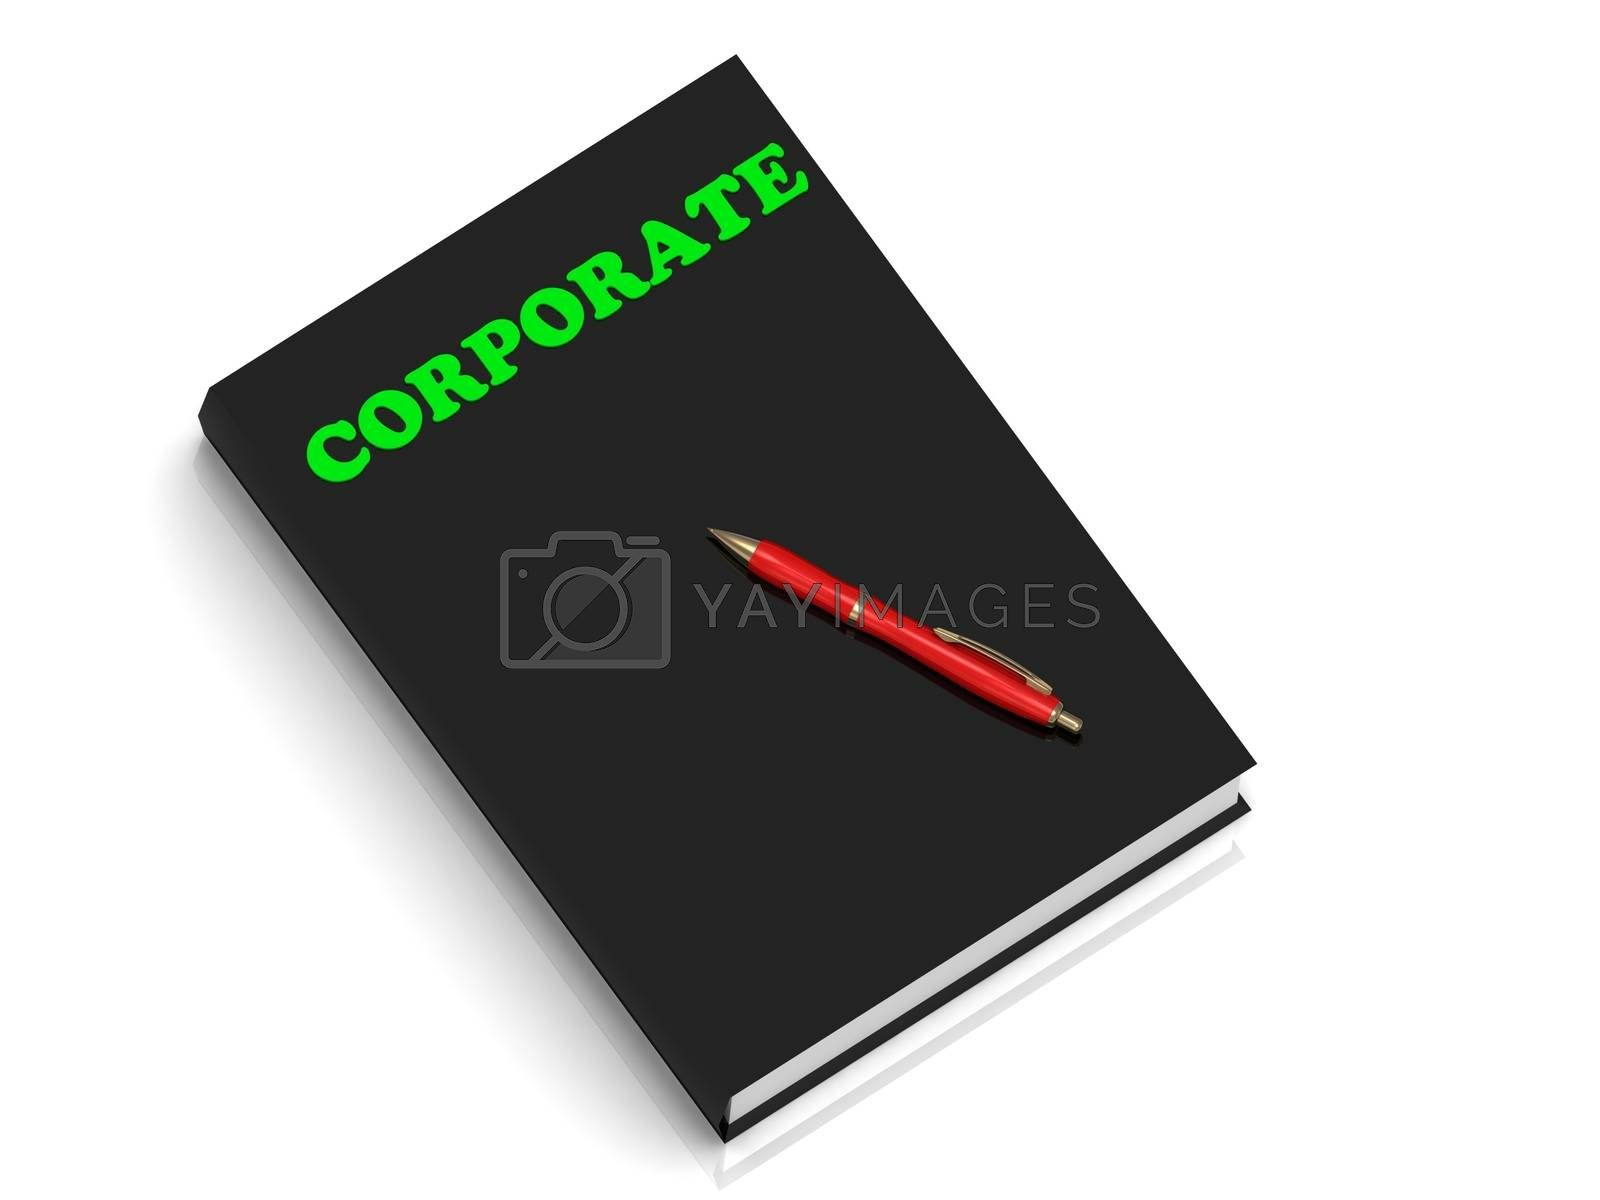 CORPORATE- inscription of green letters on black book on white background